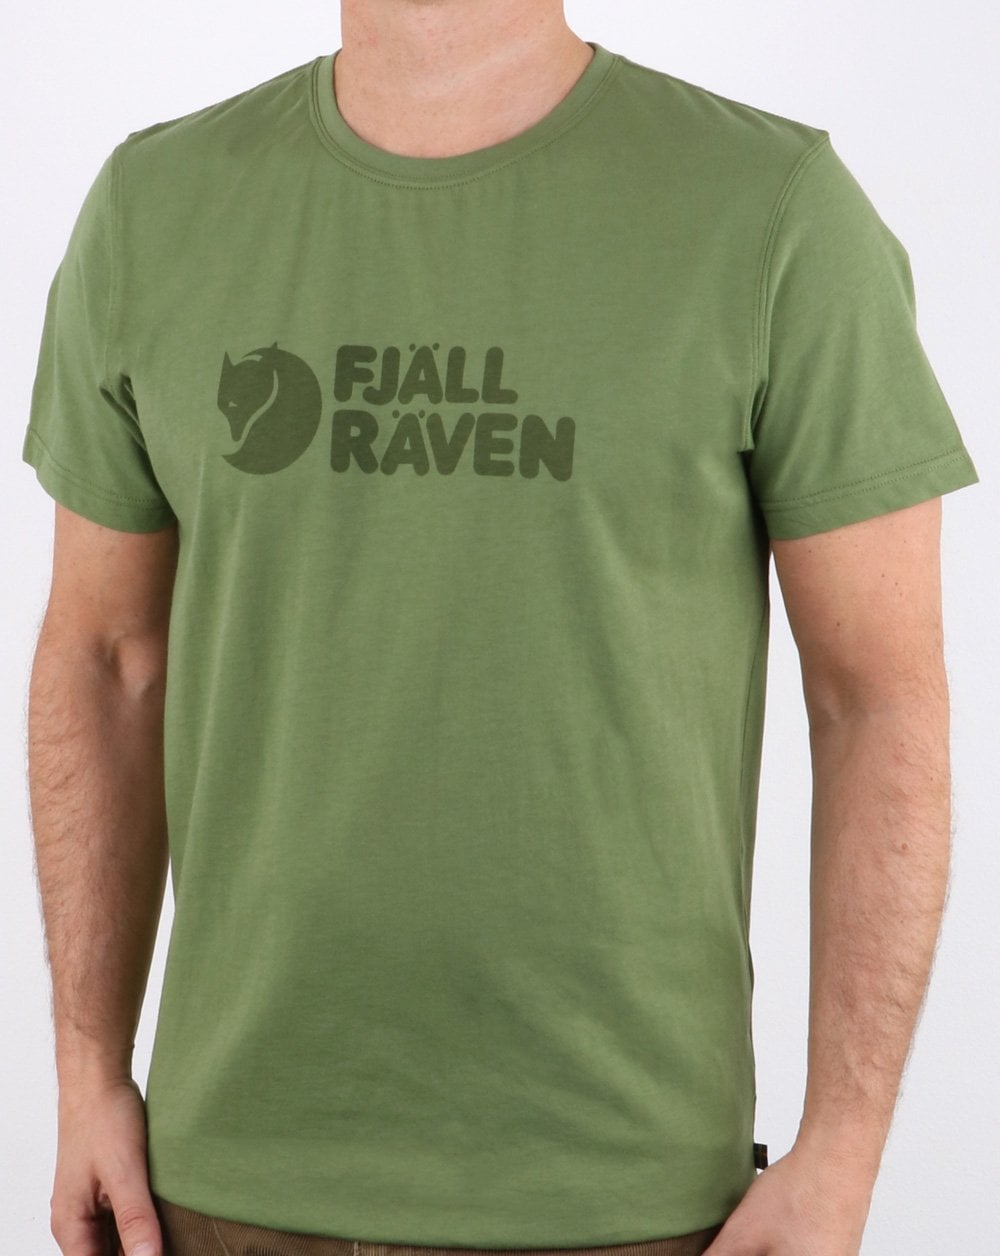 77536357bb Fjallraven Logo T Shirt Deep Fern, Mens, Tee, Cotton, Crew Neck